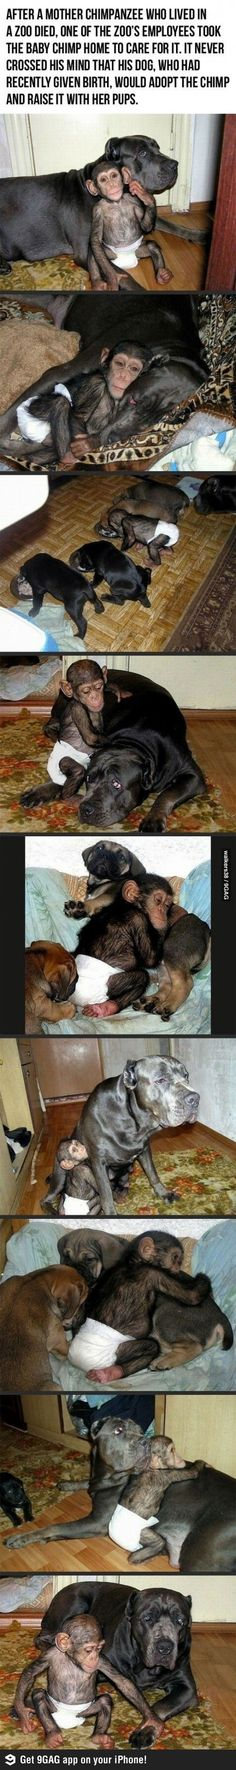 Parenting level: Dog  I almost died at how adorable this is. Dogs are the best <3